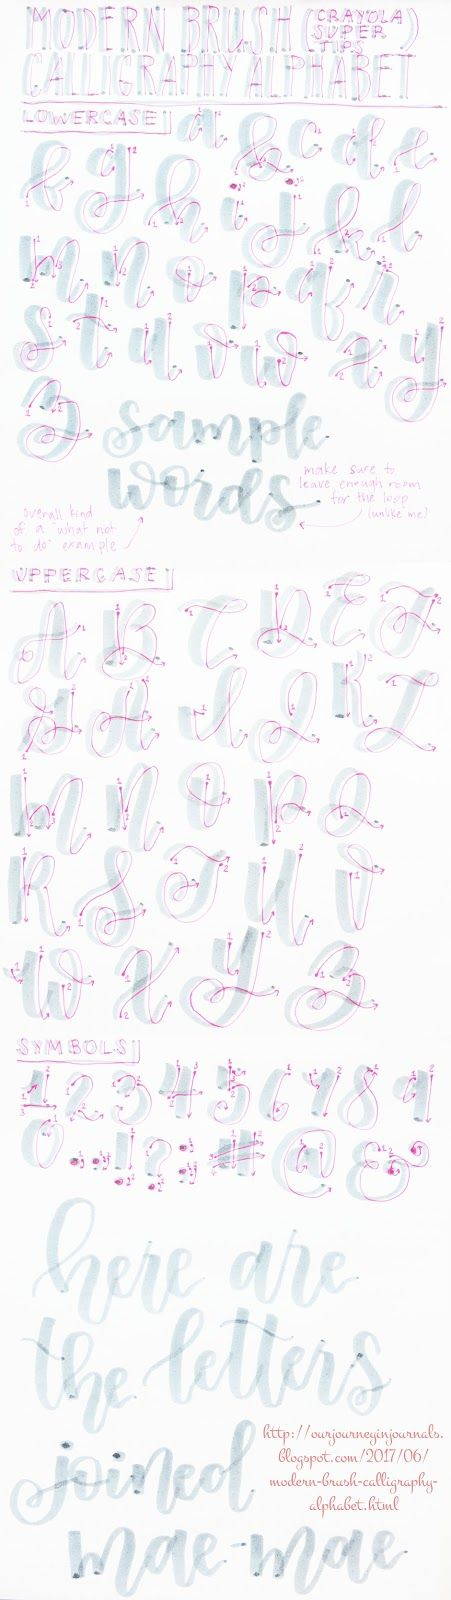 alphabet for modern brush calligraphy (specifically bounce lettering)